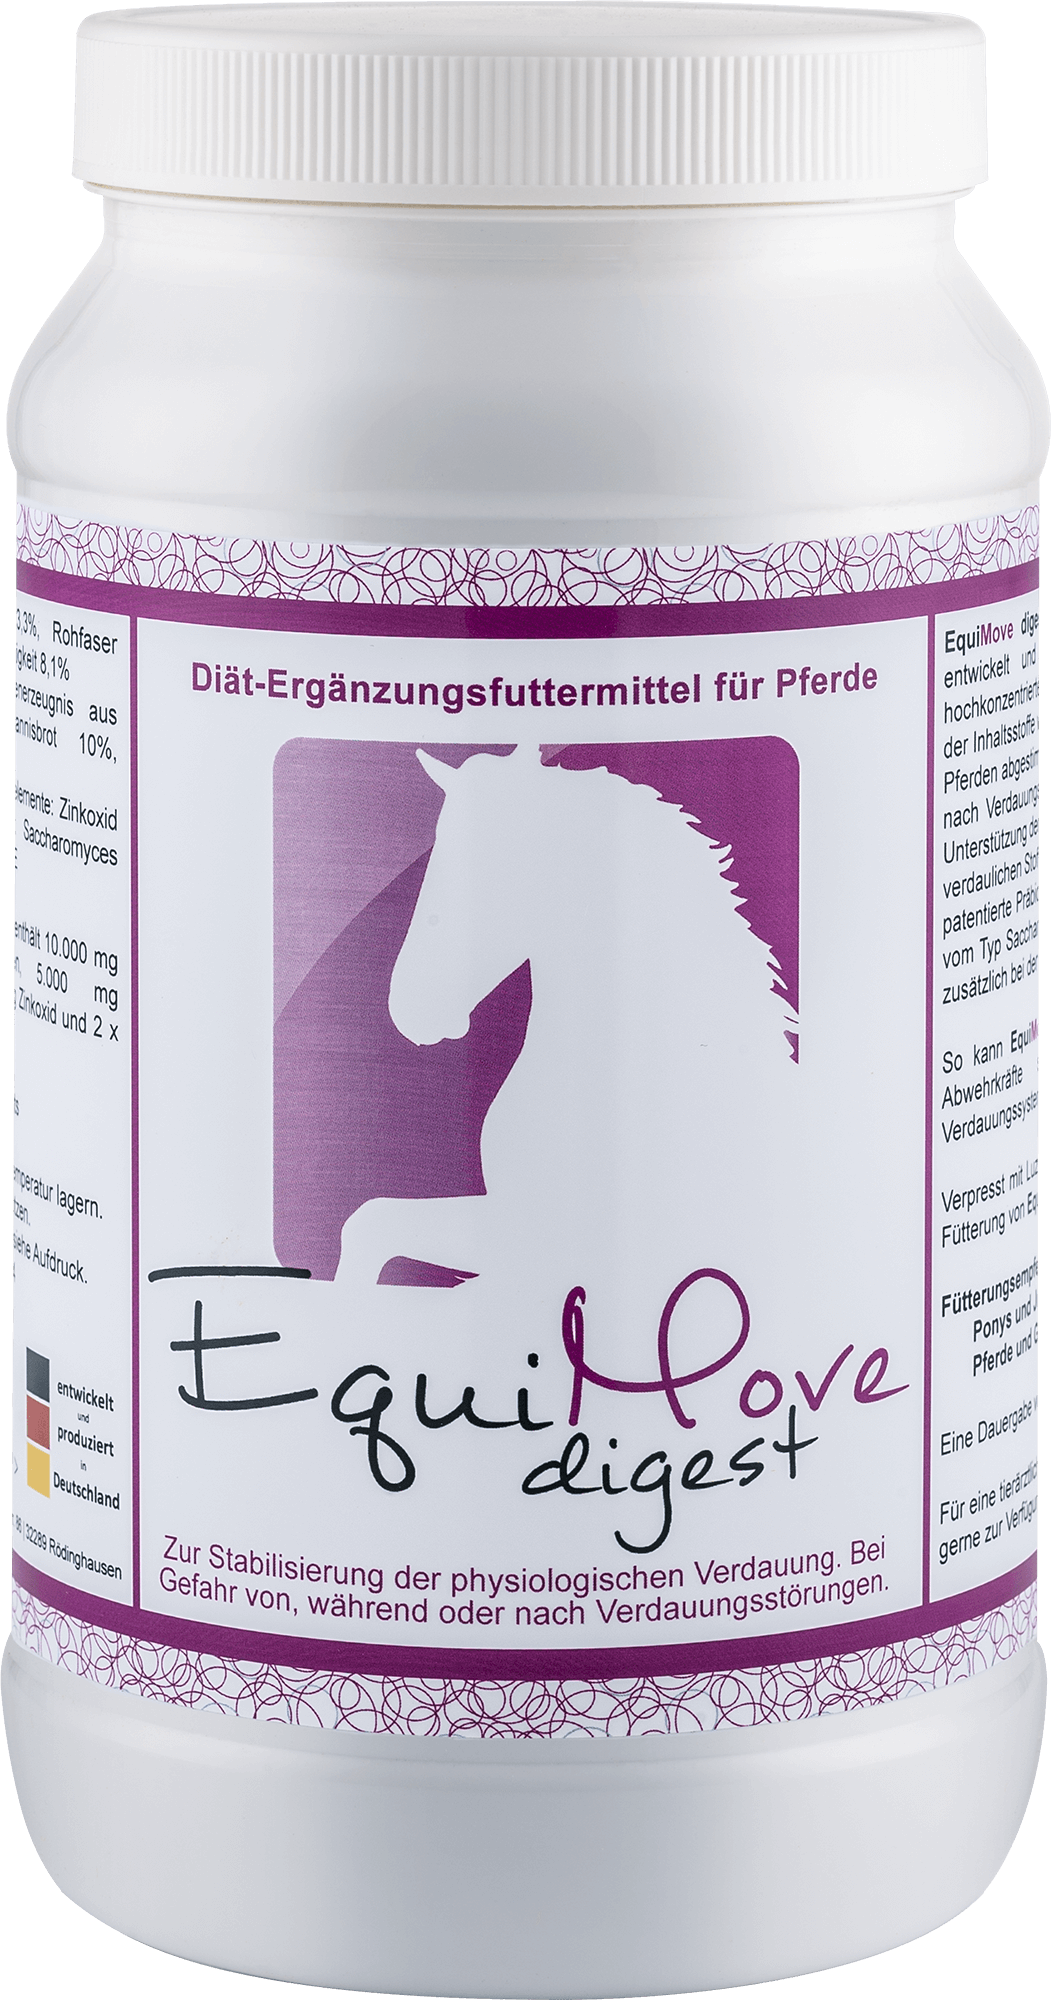 EquiMove digest